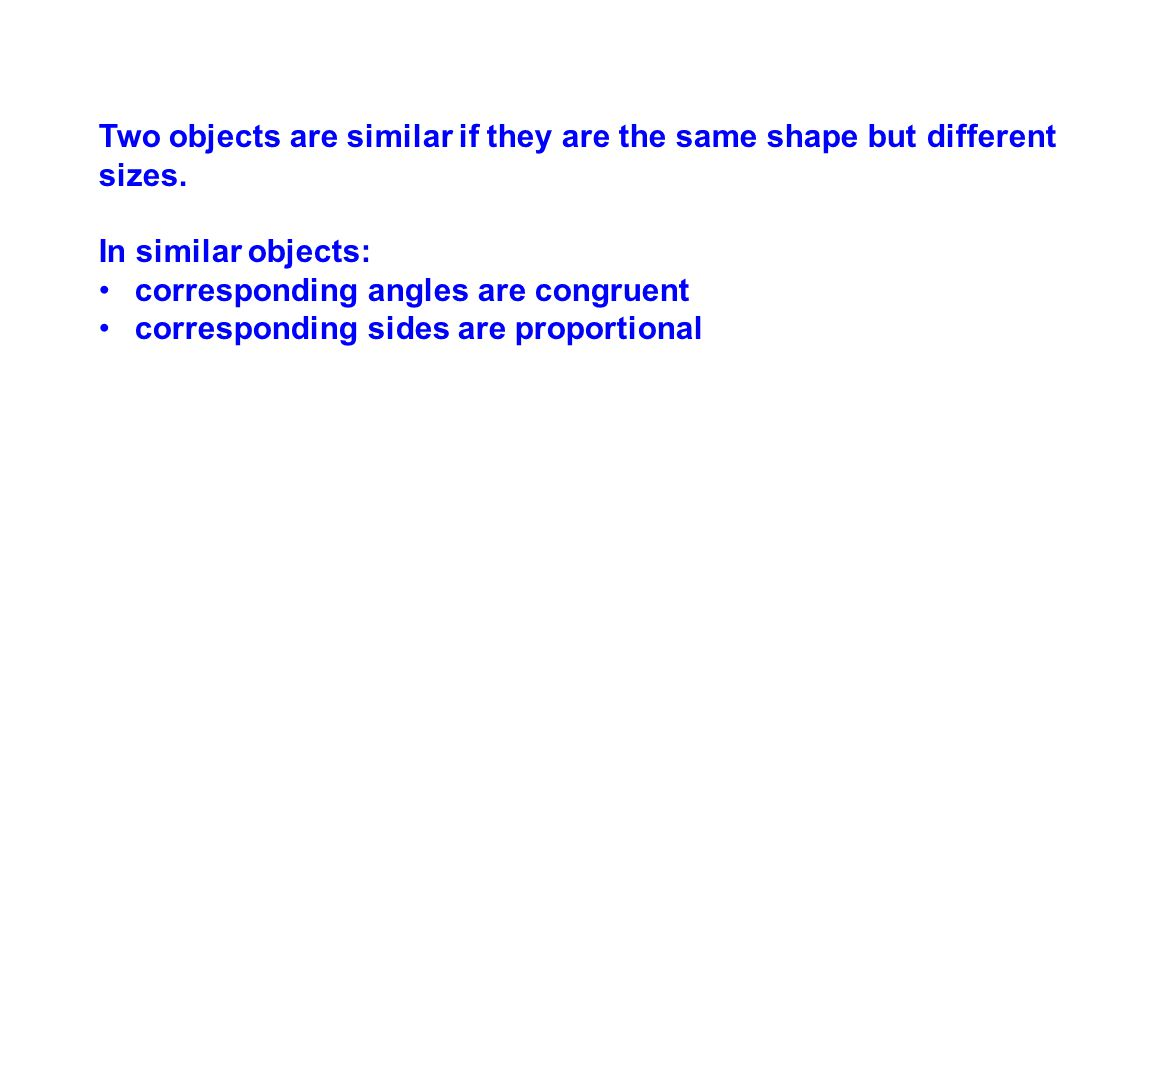 Two objects are similar if they are the same shape but different sizes.